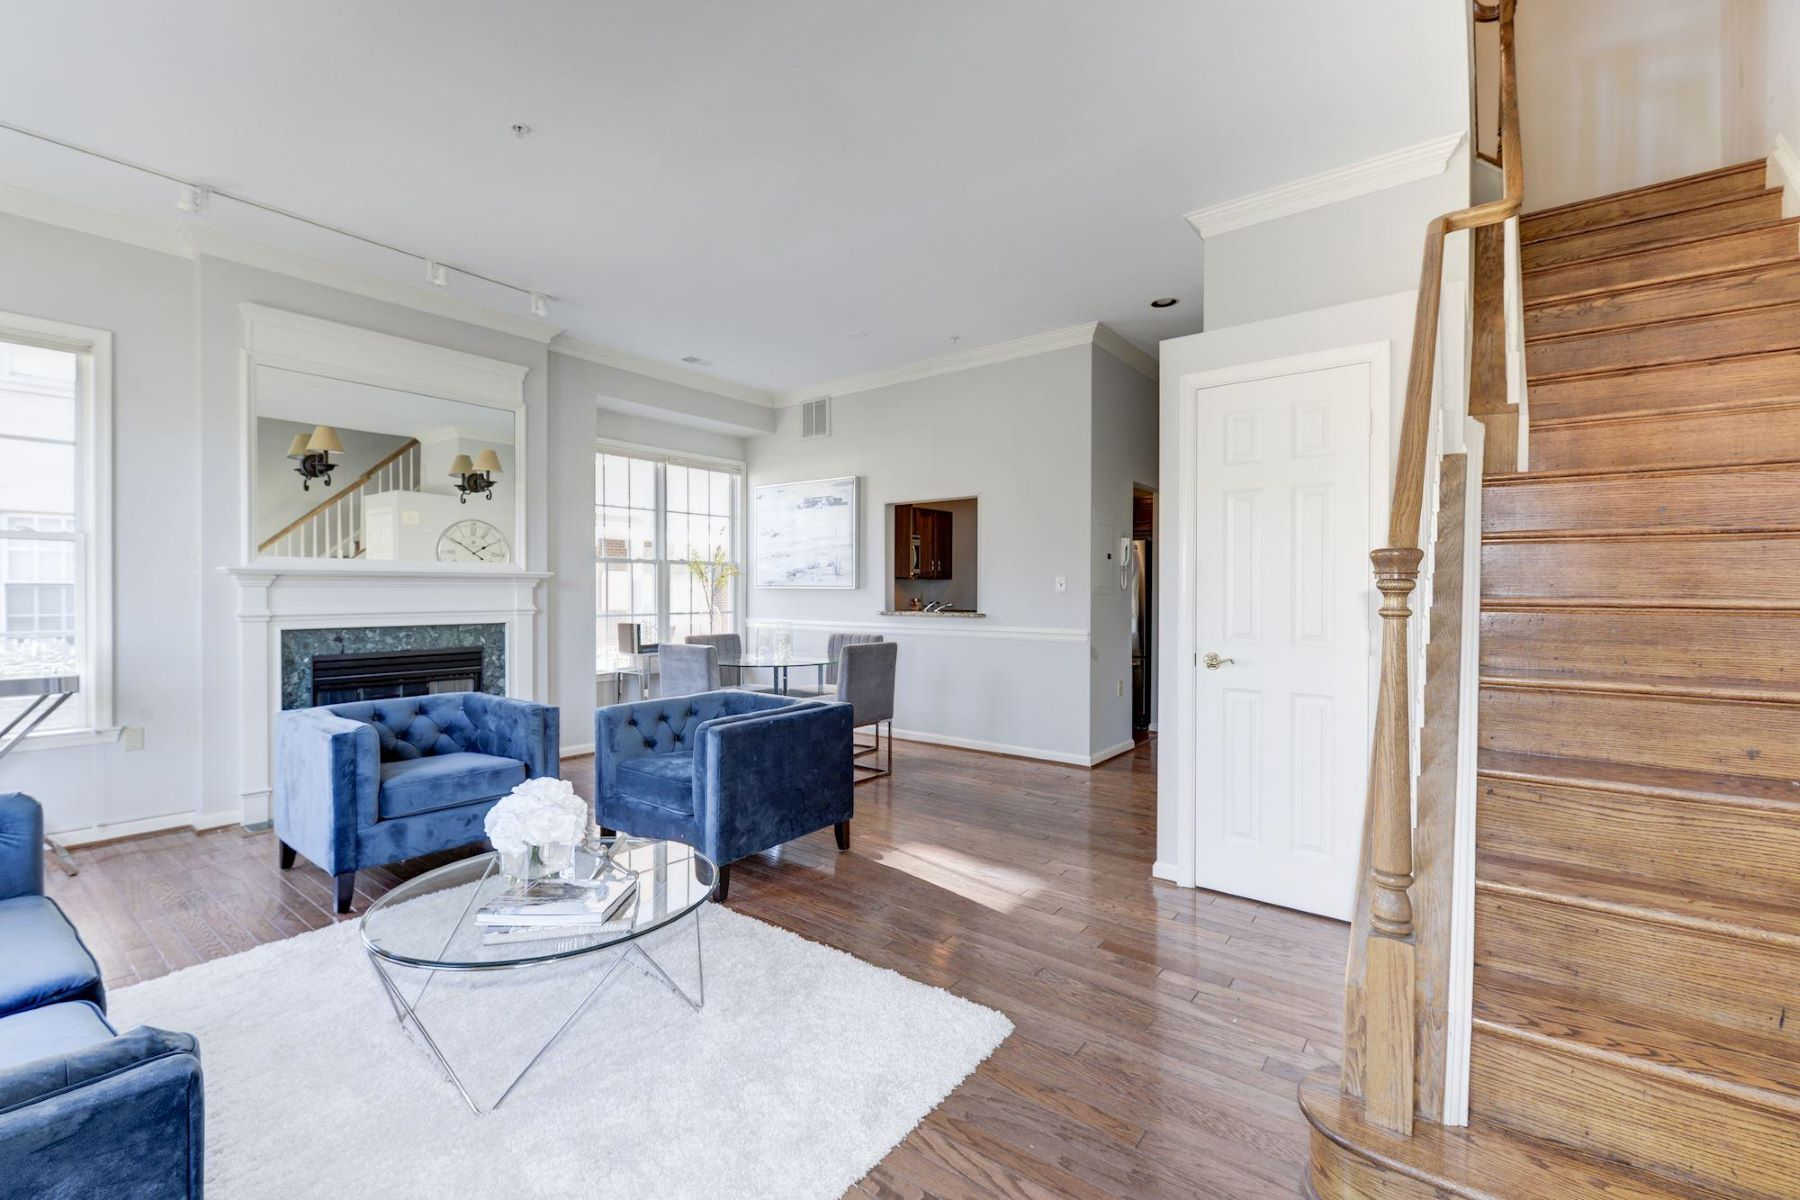 Additional photo for property listing at 24091/2 20th St Nw #1090 24091/2 20th St Nw #1090 Washington, District Of Columbia 20009 United States